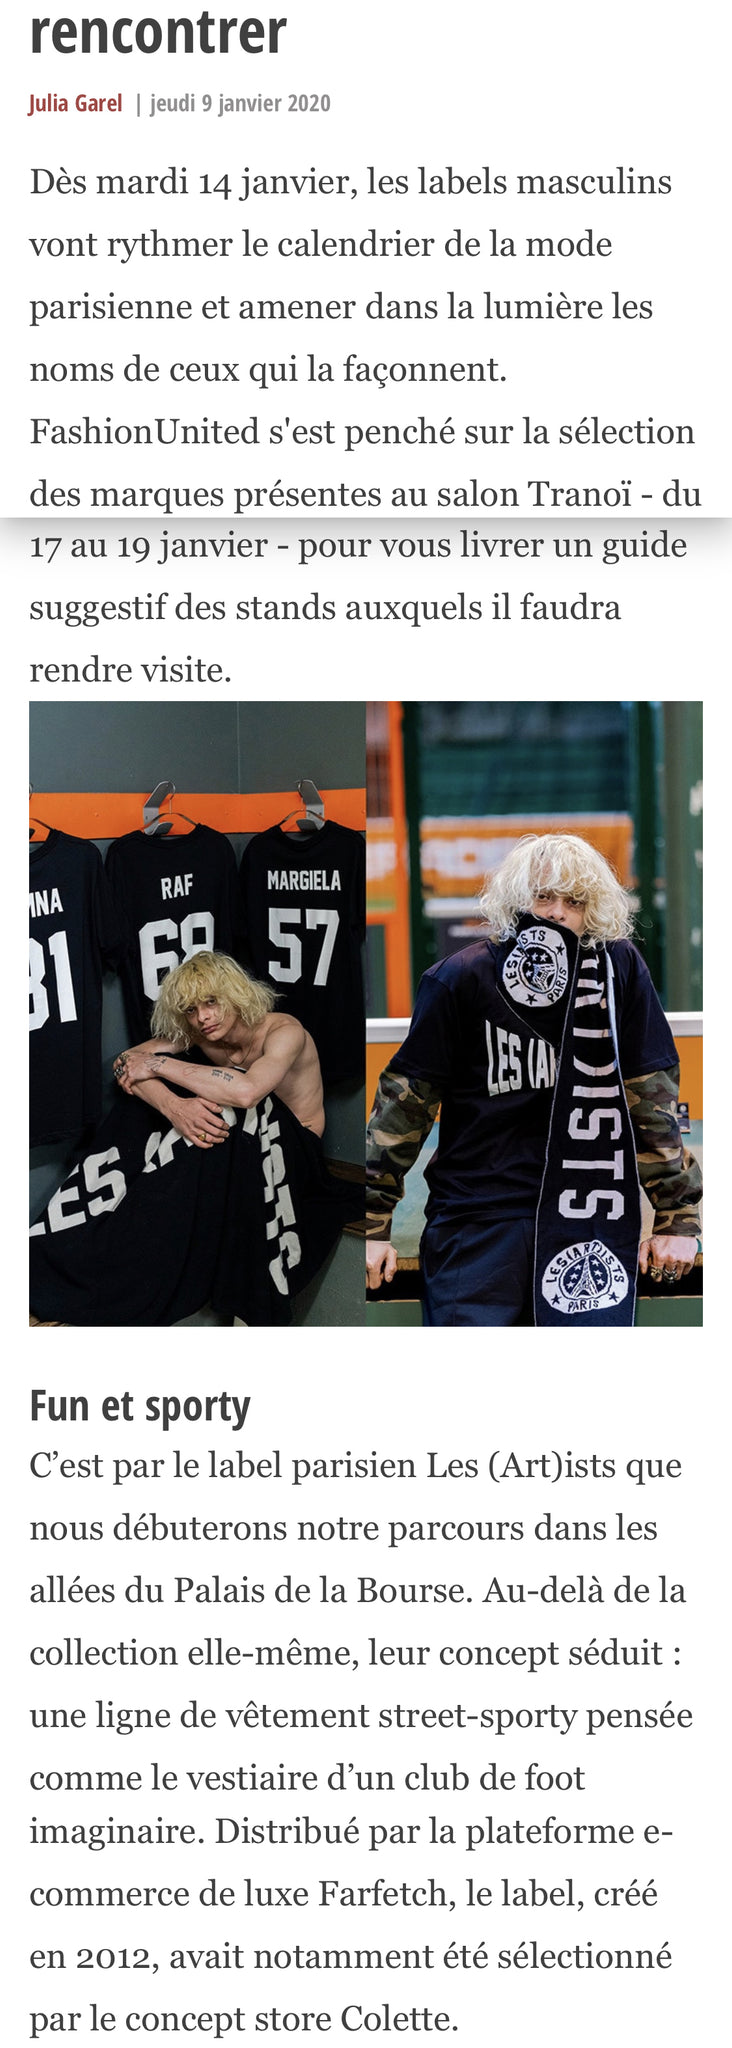 LES (ART)ISTS X FASHION UNITED